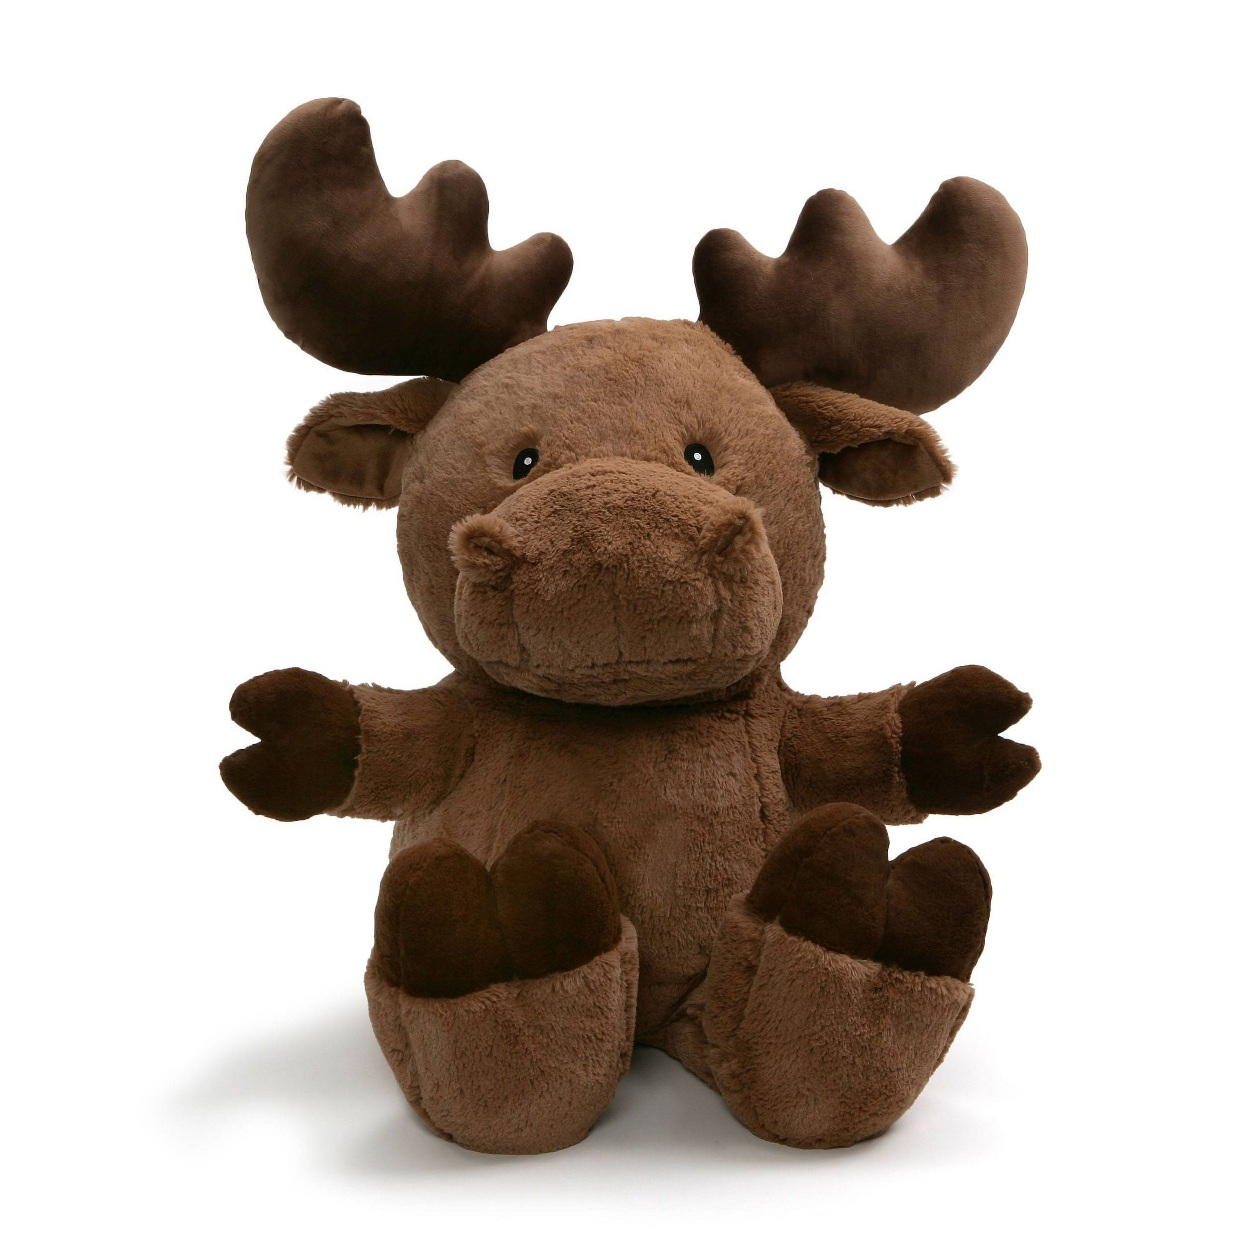 - If you follow along with me on IG stories then you'll know Caroline has been in love with this giant moose for a while now. We bought it for her birthday and she has just been carrying it around ever since. So you know I had to add it on this week's list!Find it here.